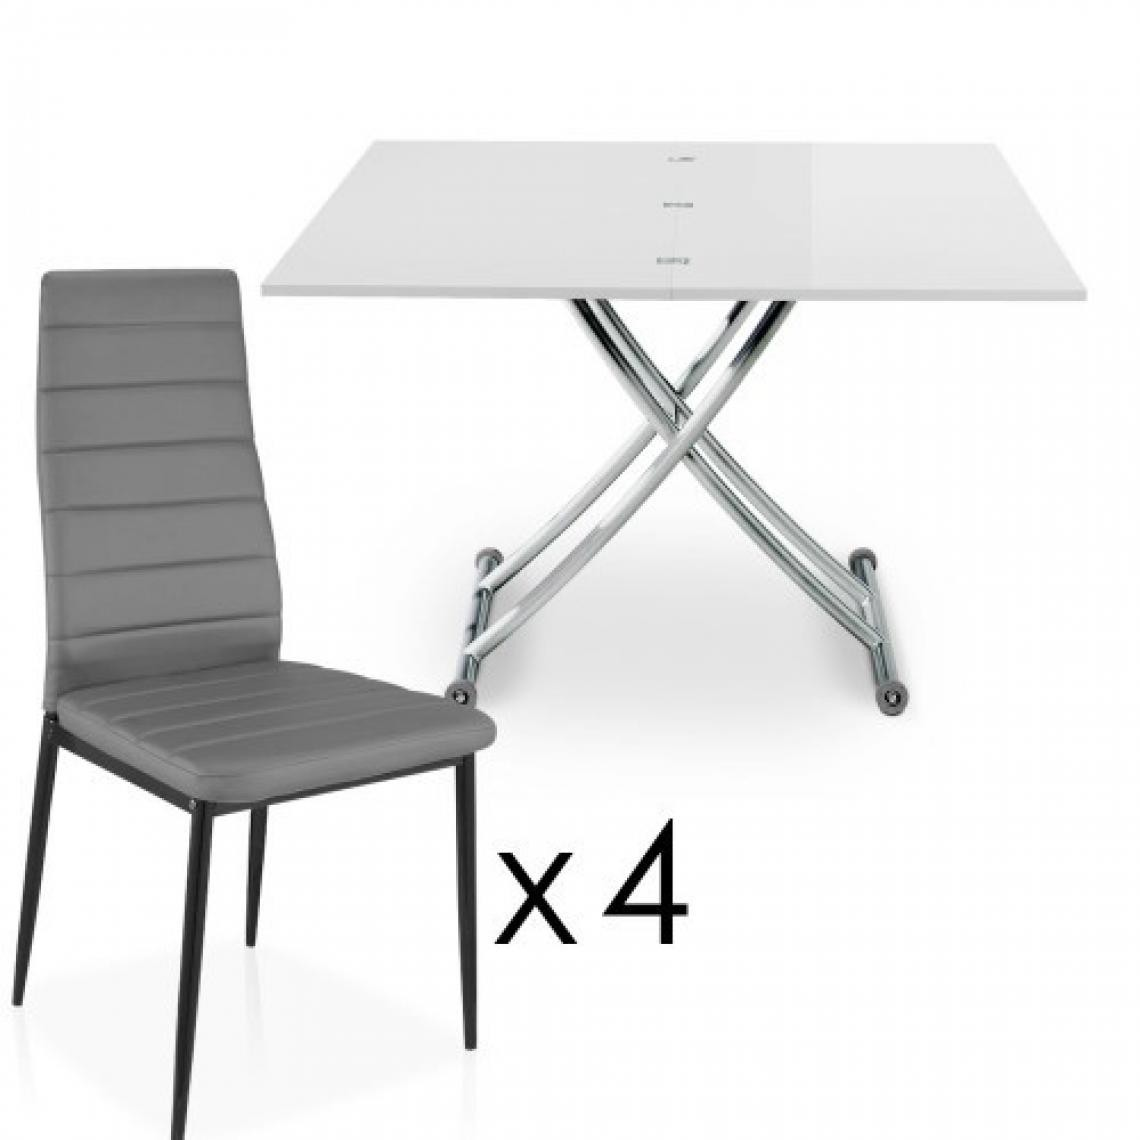 table basse relevable a rallonges blanche 4 chaises grise bella